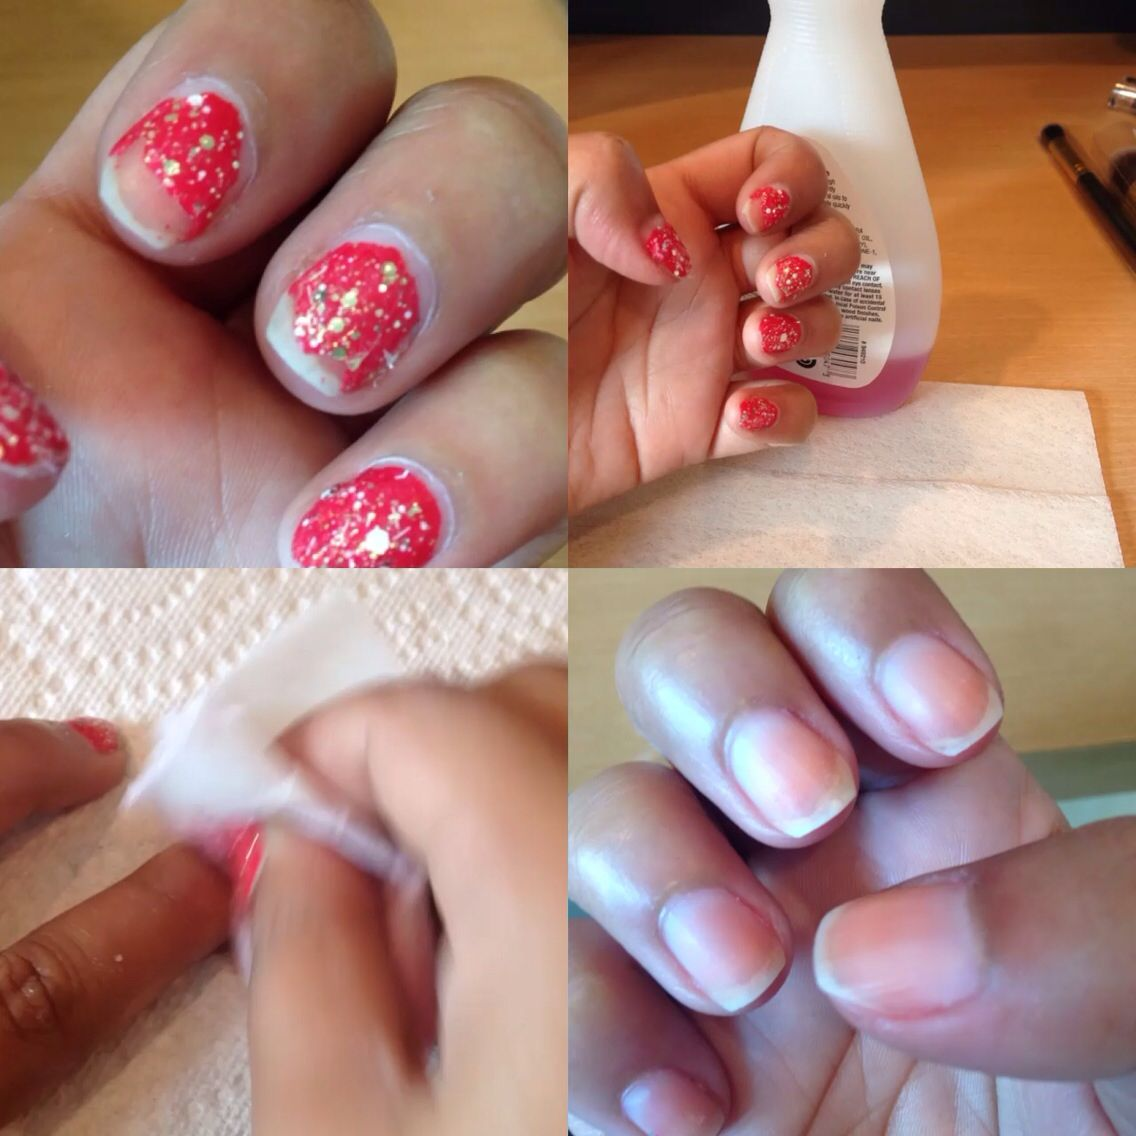 How do you get stubborn nail polish off? Use a dryer sheet